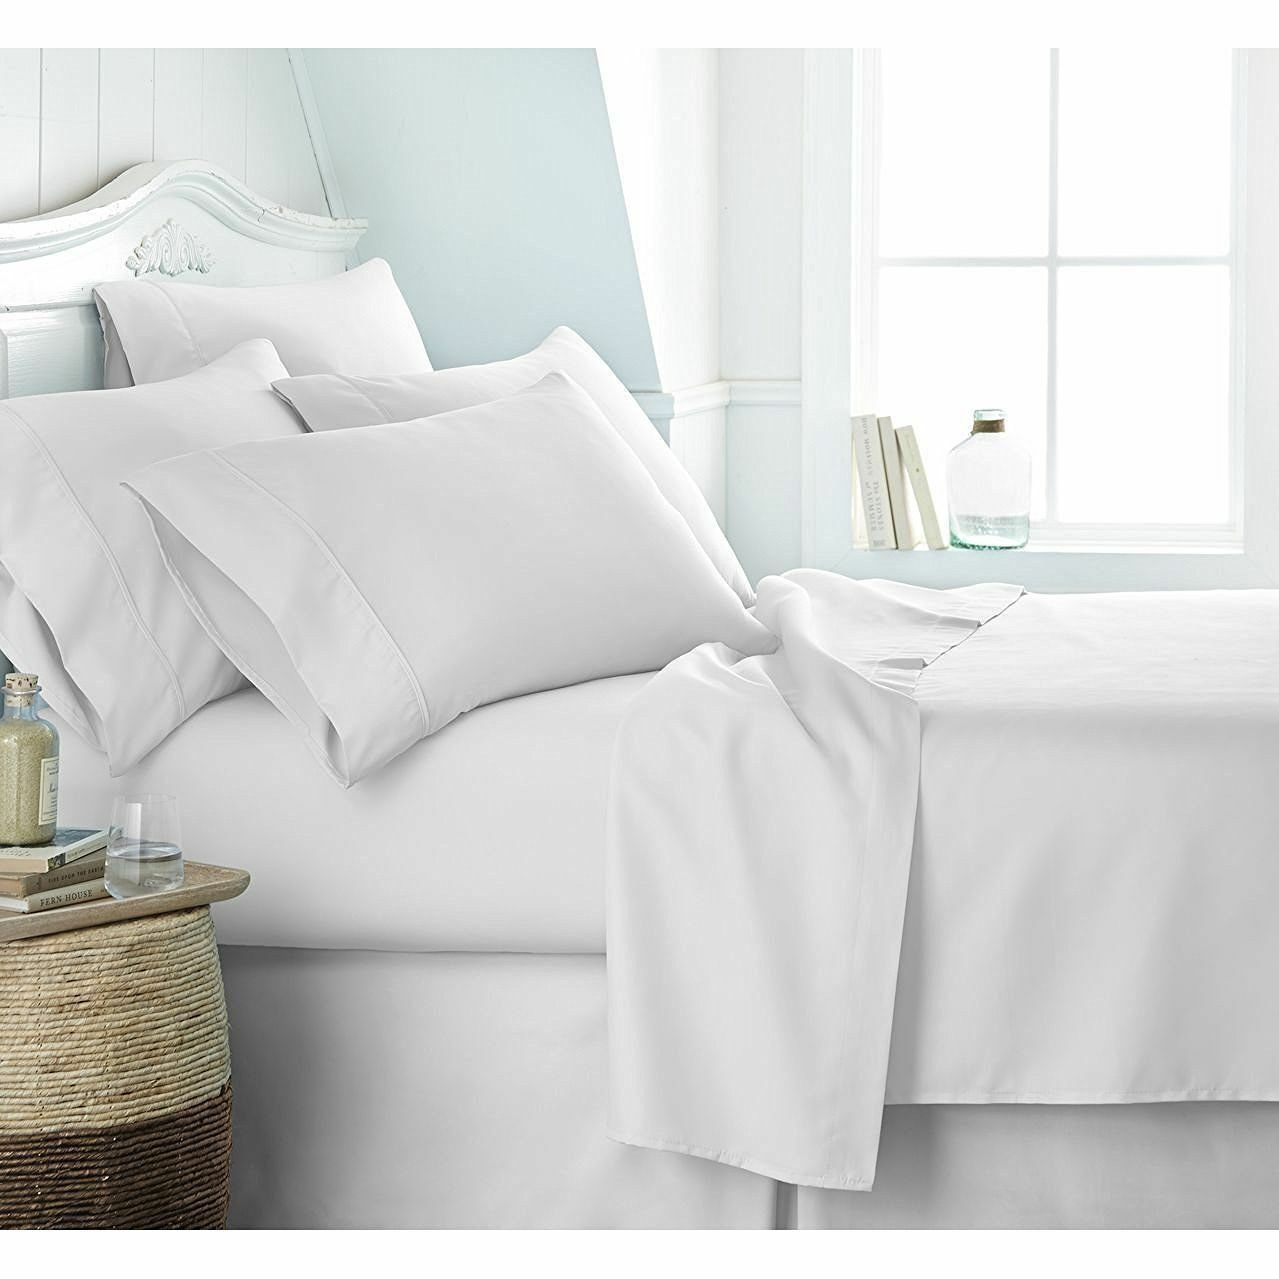 BRANDED BEDDING ITEM 100% Egyptian Cotton White Solid 800 Thread Count